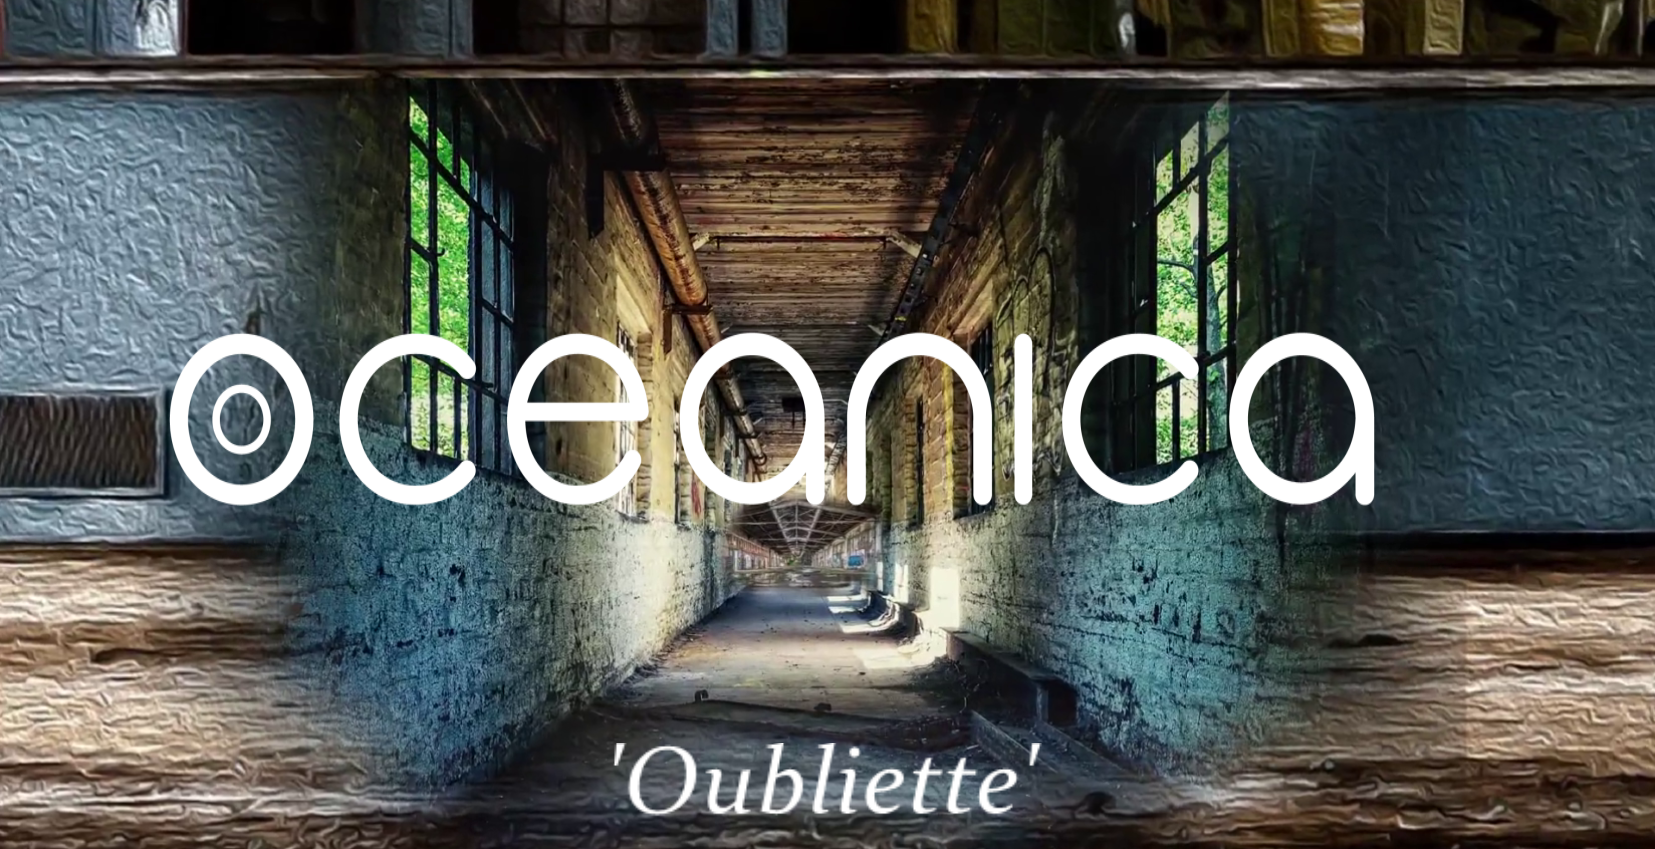 Oubliette (music video for OCEANICA)